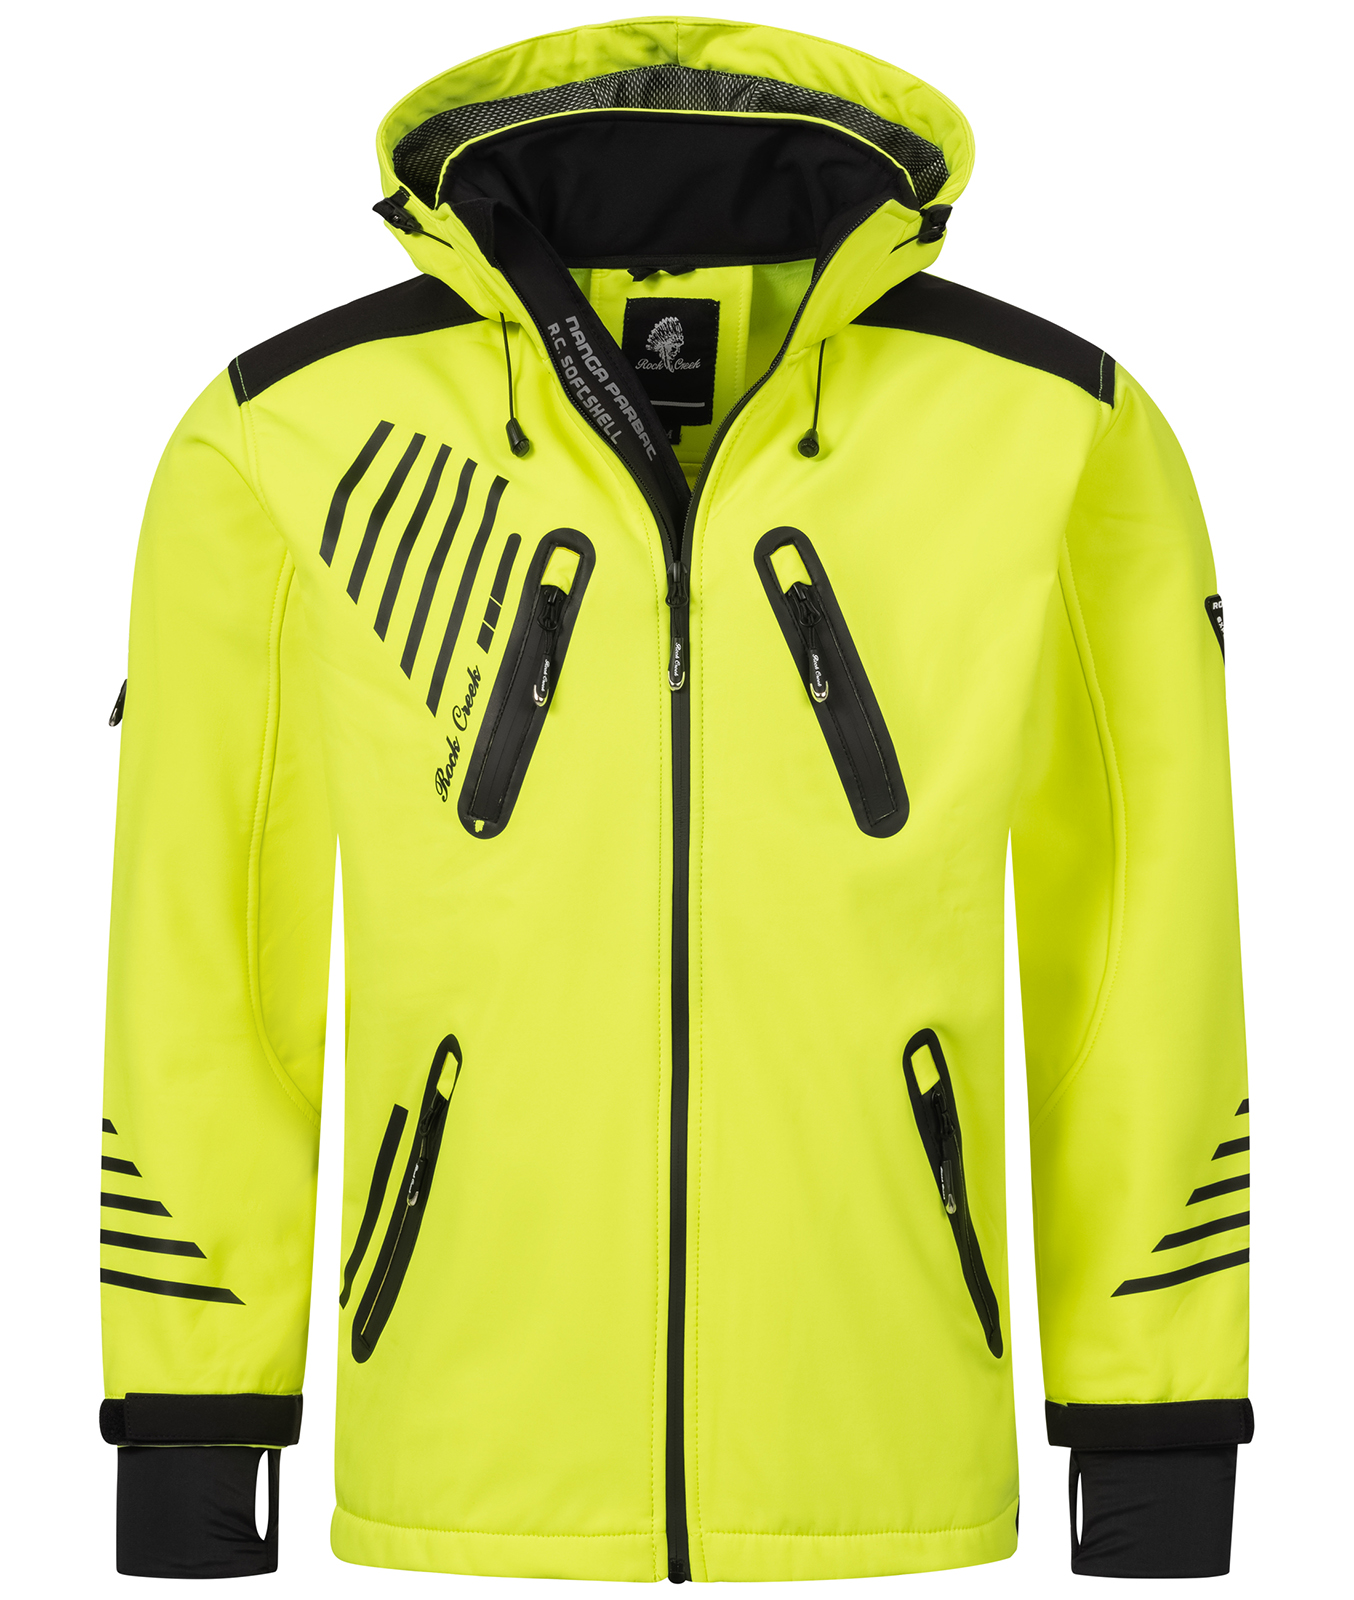 rock creek herren softshell jacke outdoorjacke windbreaker bergangs jacke h 140 ebay. Black Bedroom Furniture Sets. Home Design Ideas